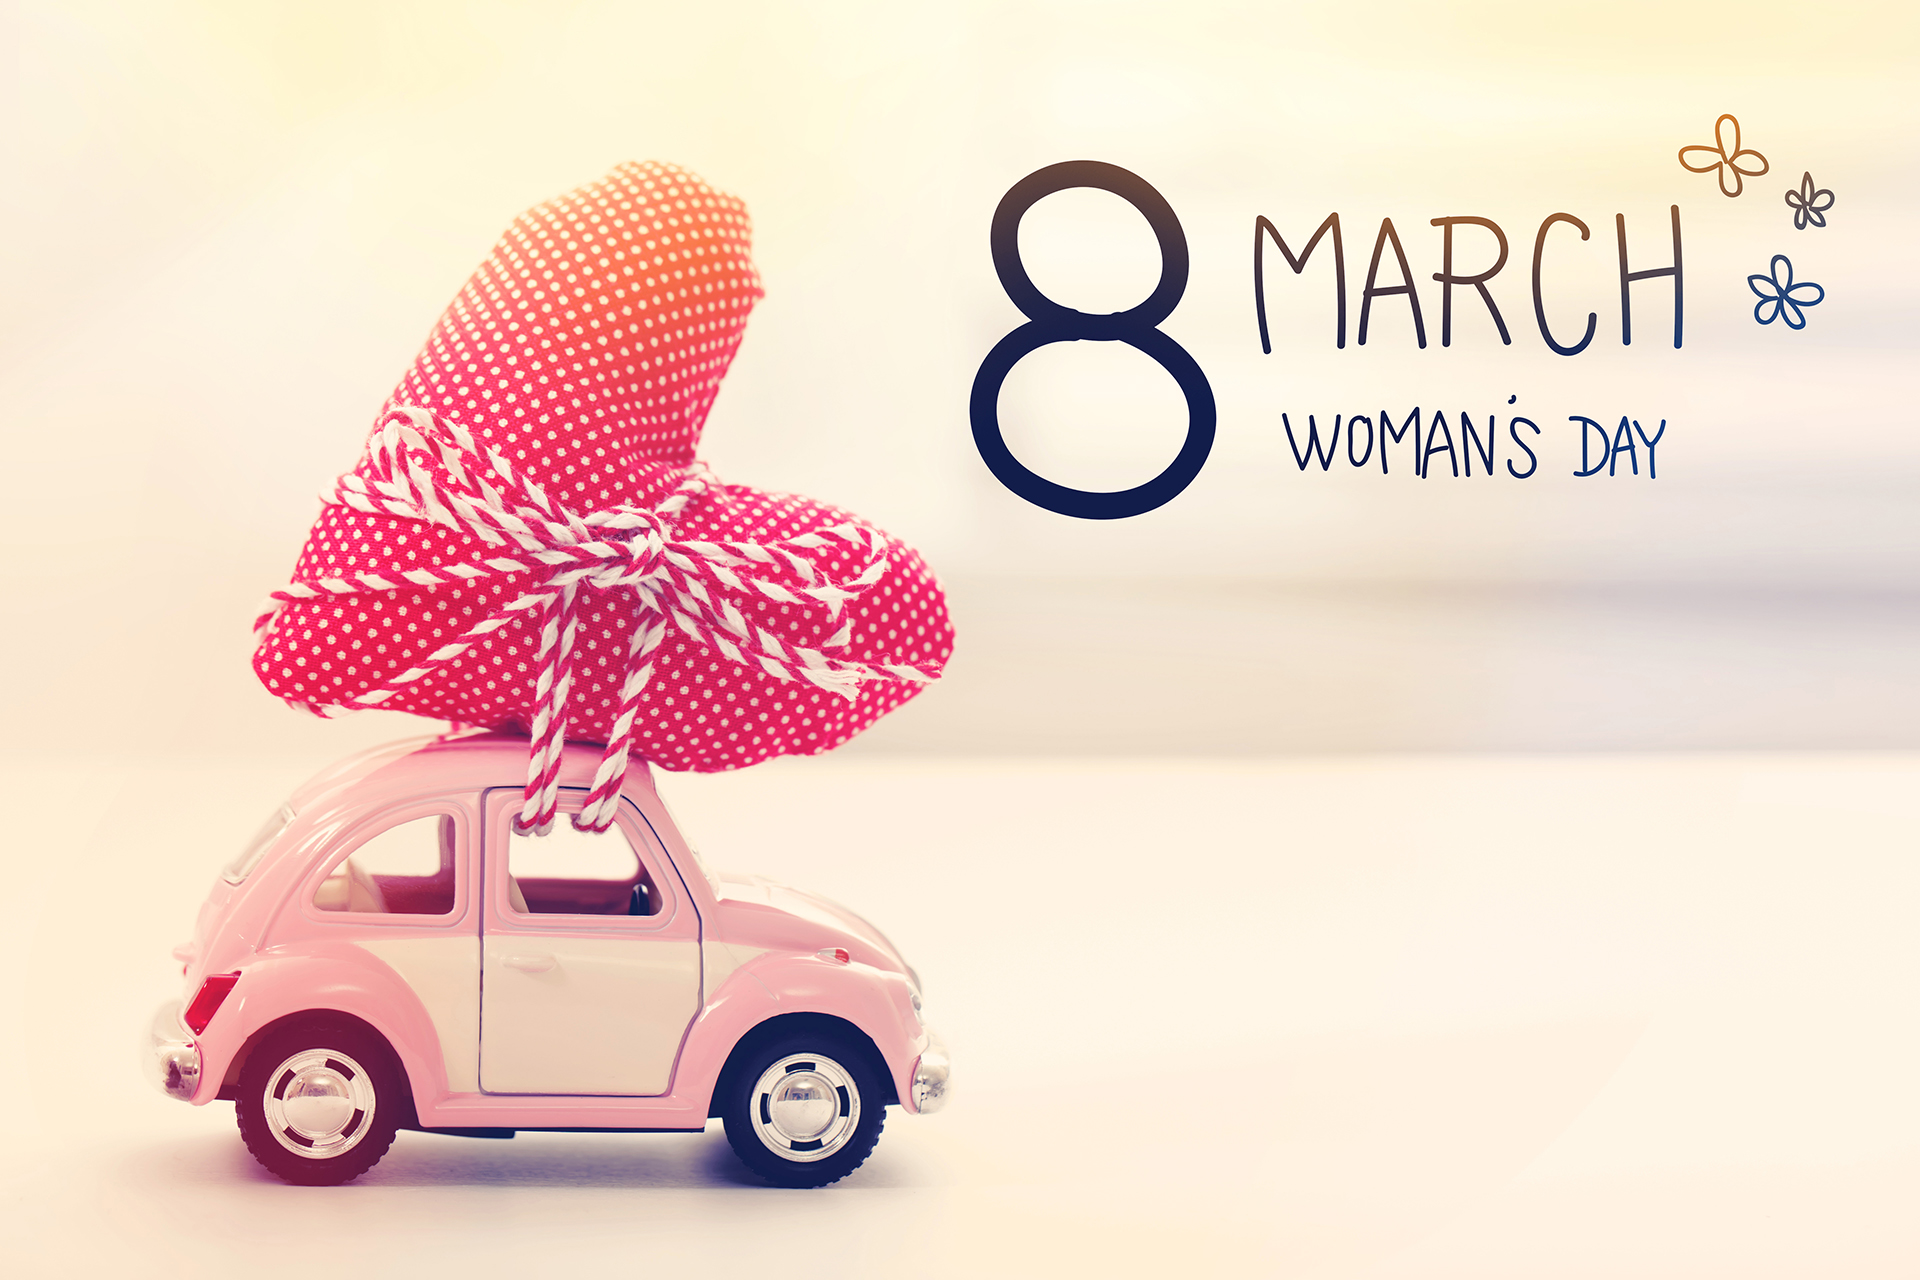 Womans Day message with miniature pink